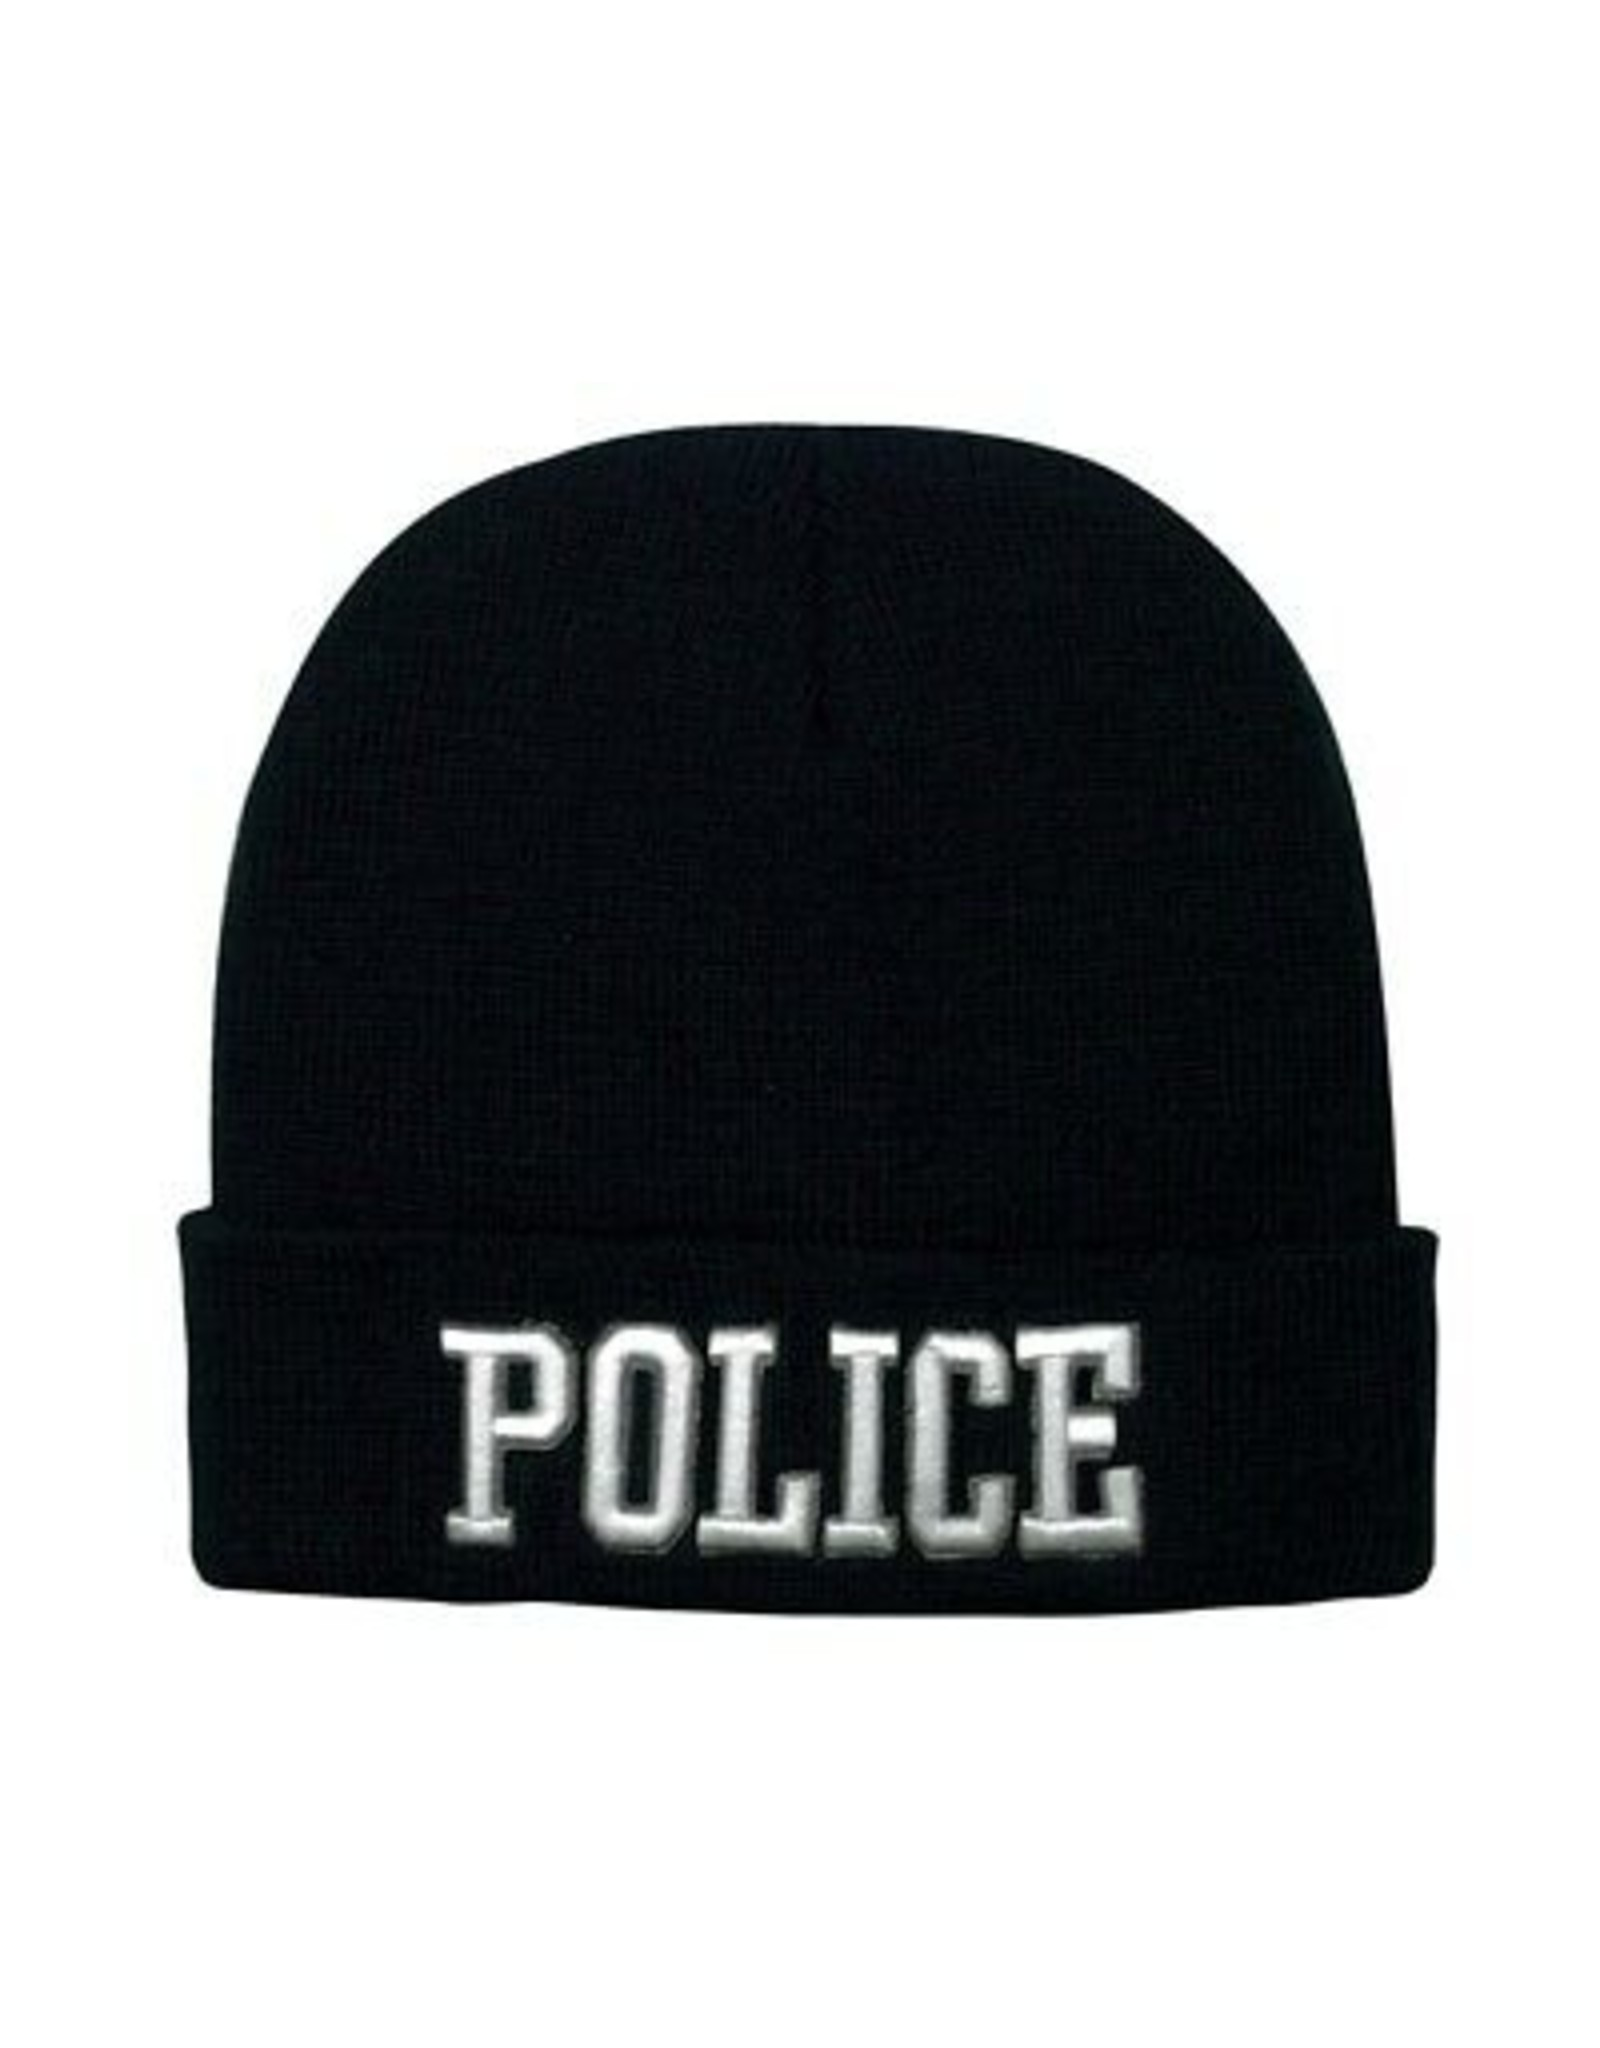 ROTHCO ROTHCO DELUXE EMBROIDERED WATCH CAP POLICE